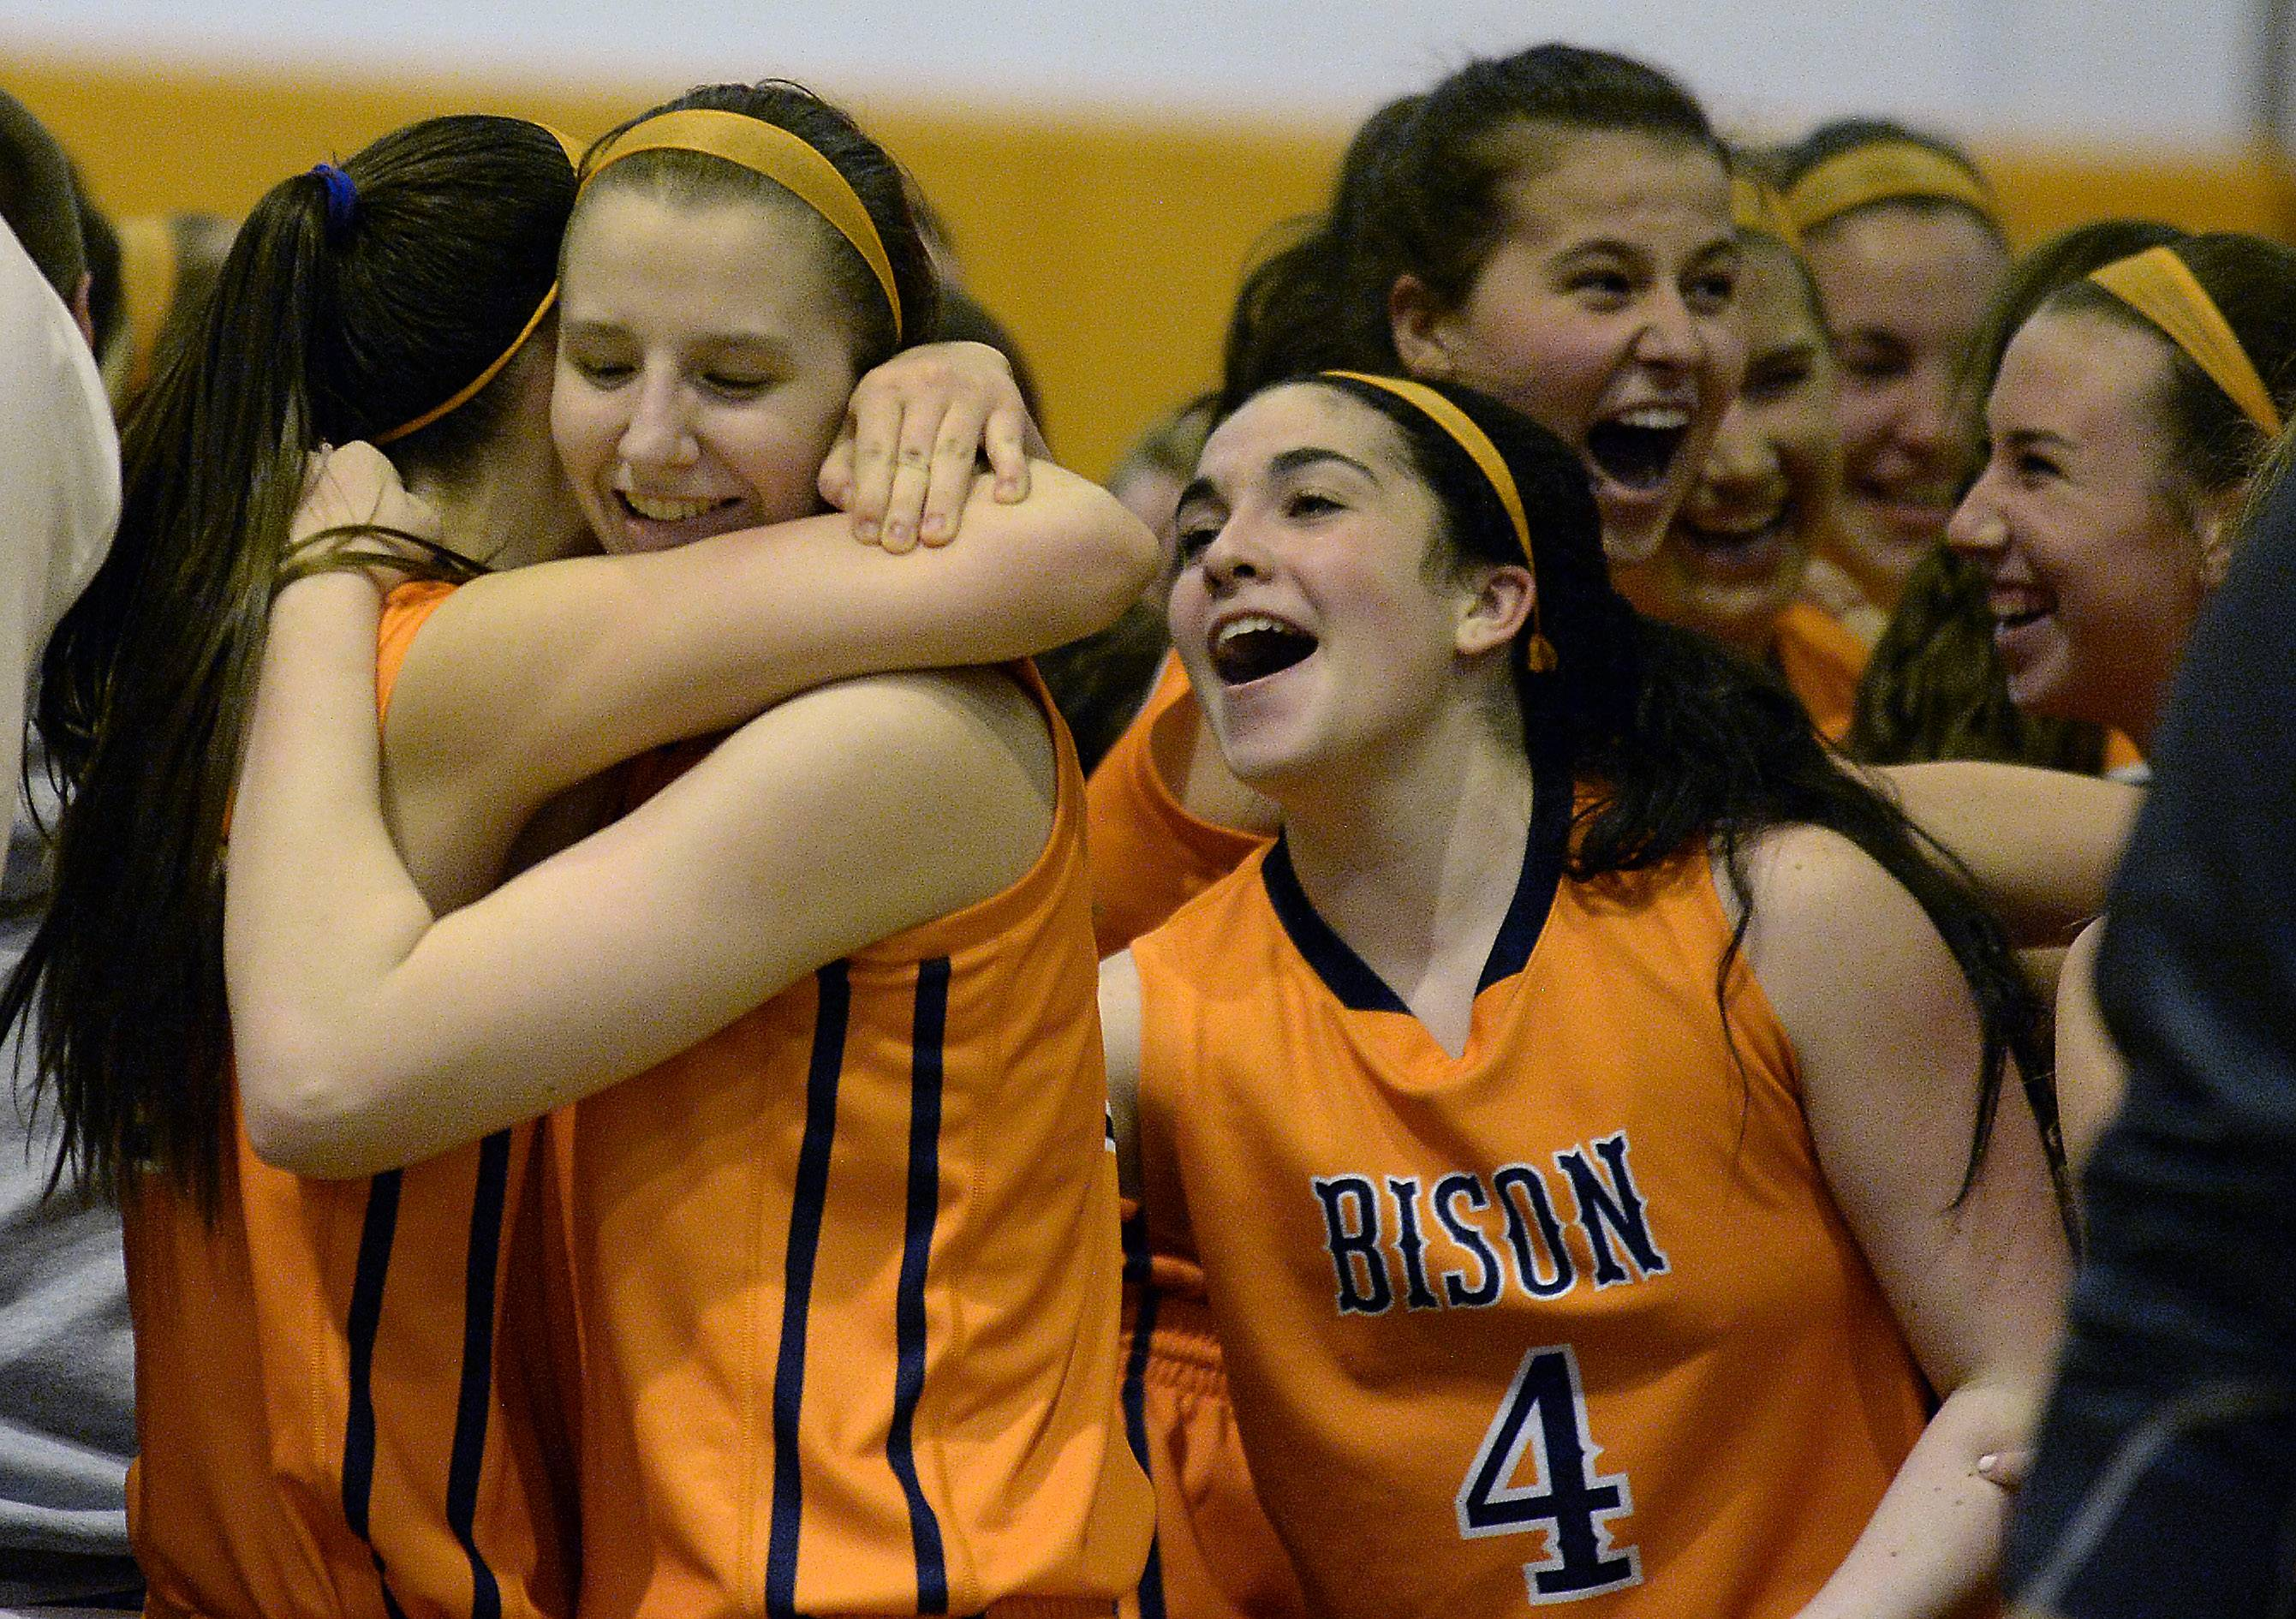 Crowd-pleasing win for Buffalo Grove